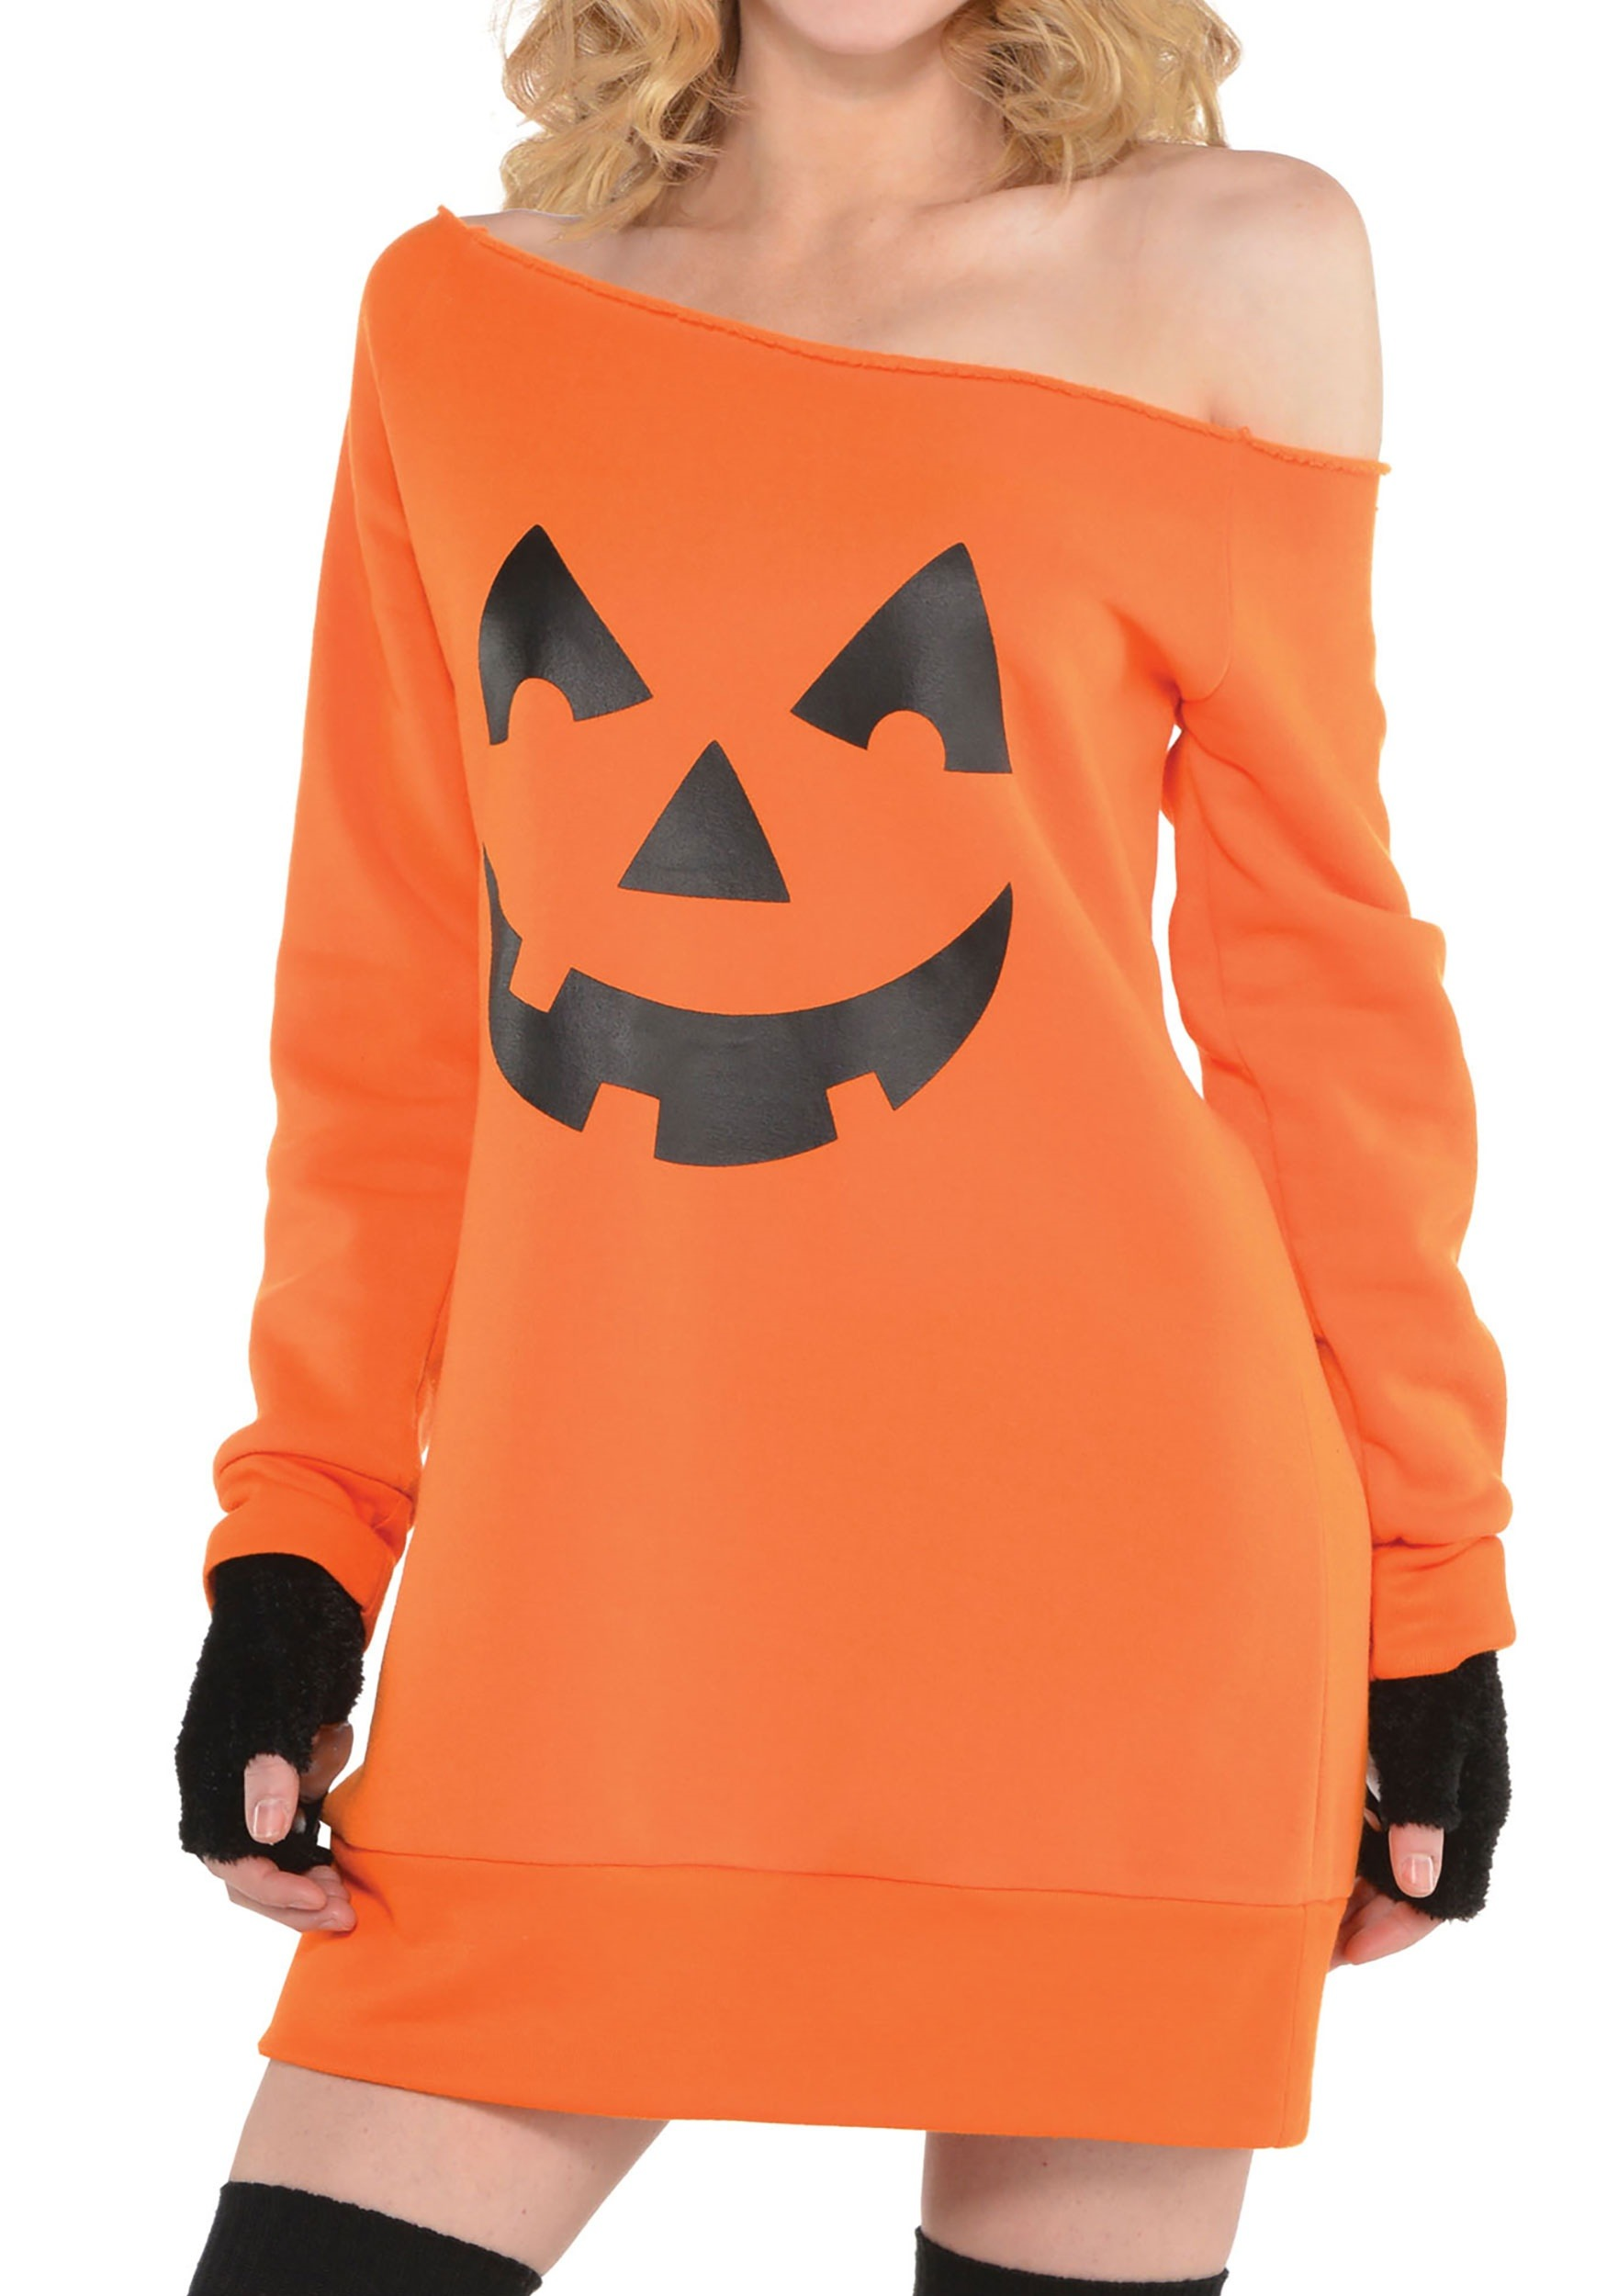 Pumpkin_Off_the_Shoulder_Tunic_for_Women